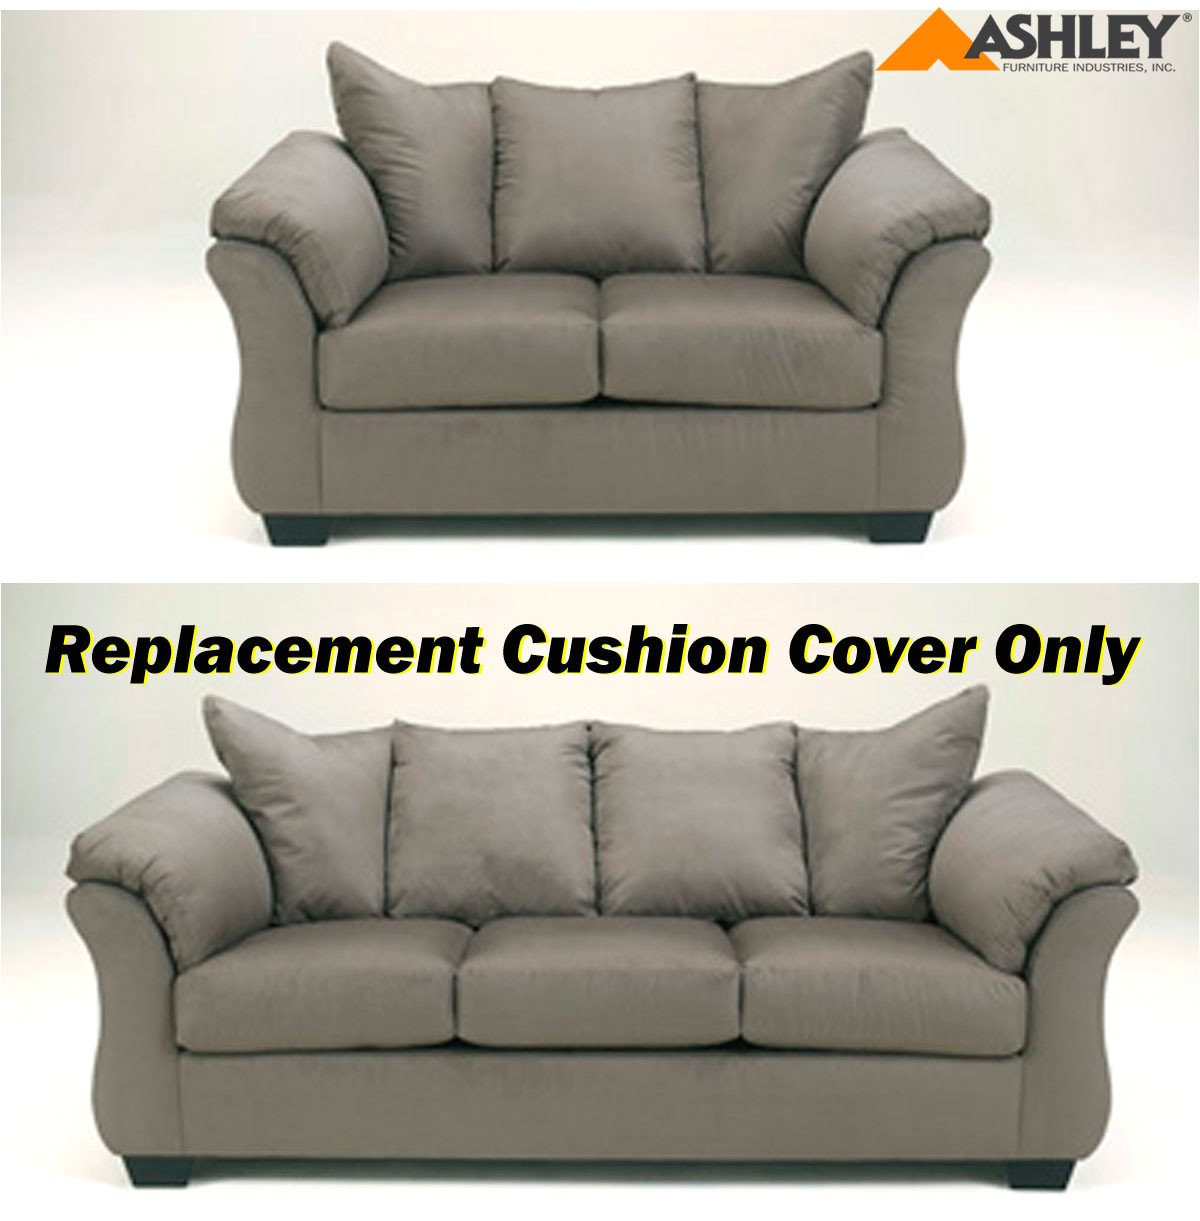 ashley darcy replacement cushion cover only 7500538 or 7500535 cobblestone p 81670